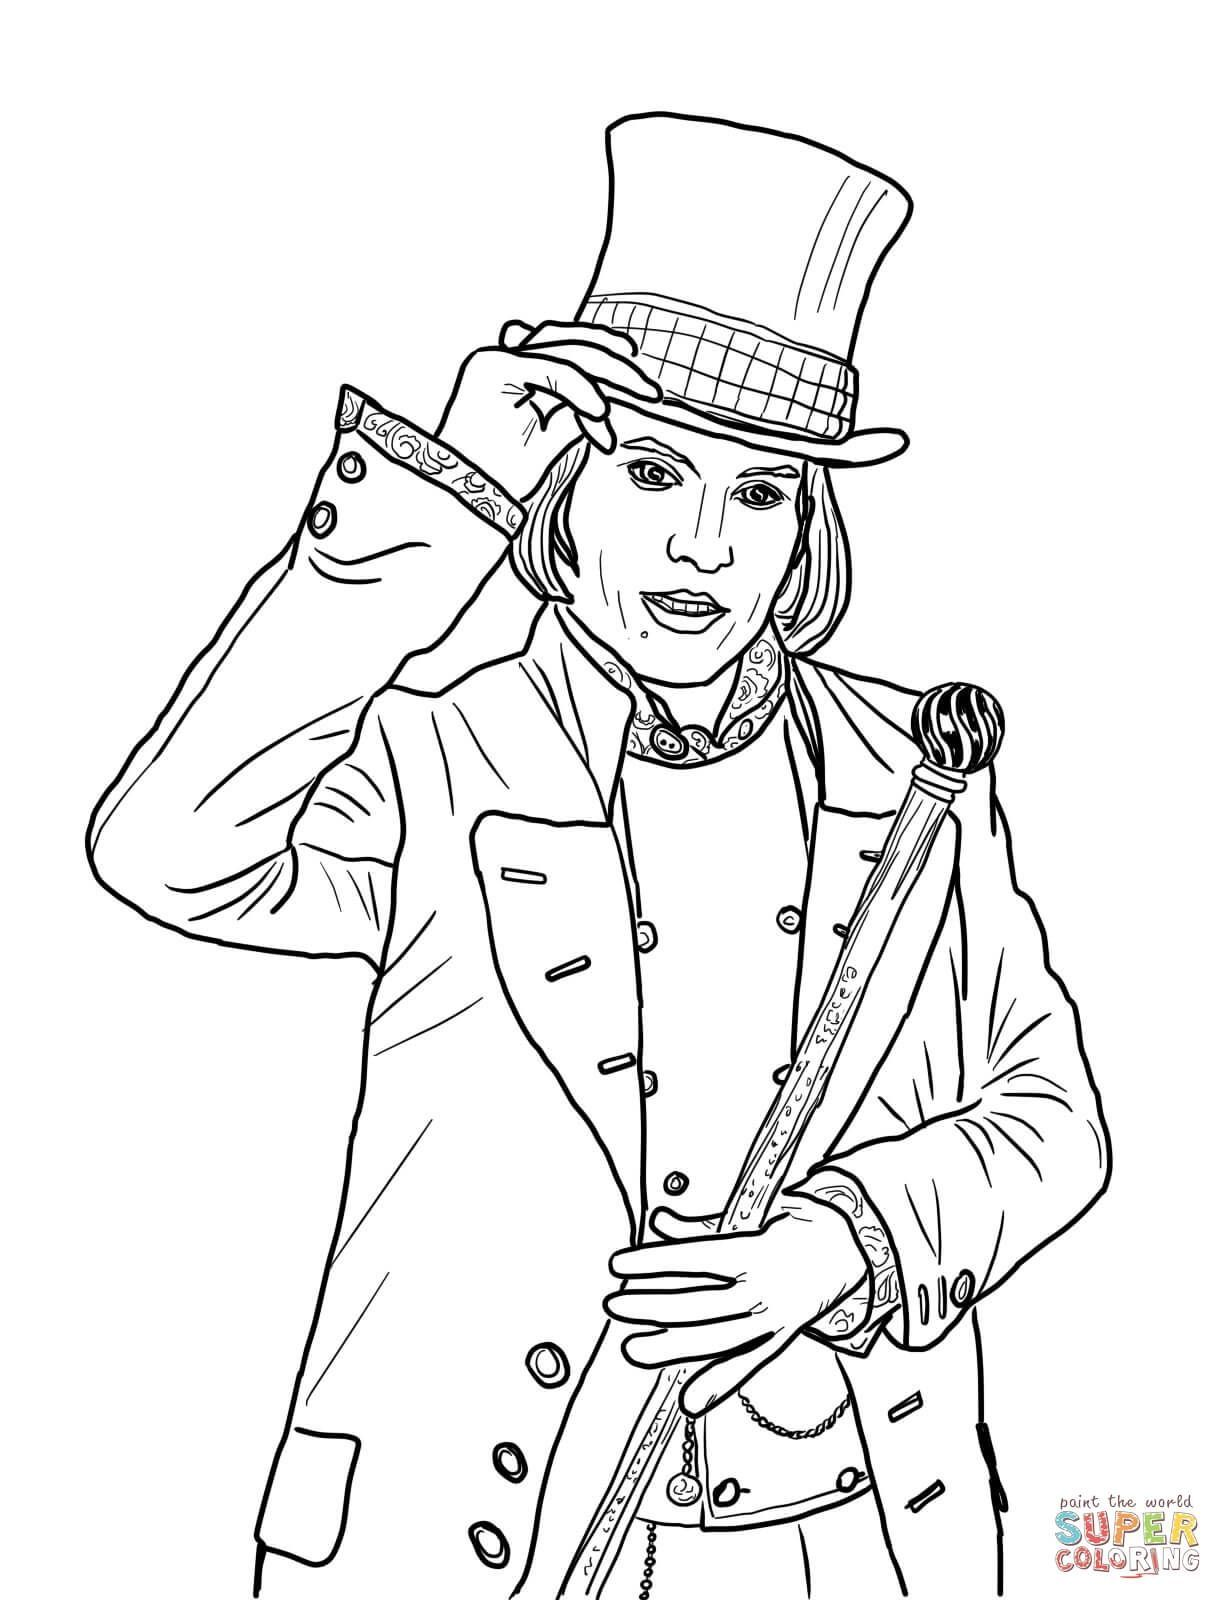 james and the giant peach coloring pages free james the giant peach coloring pages coloring pages pages giant coloring and peach james the